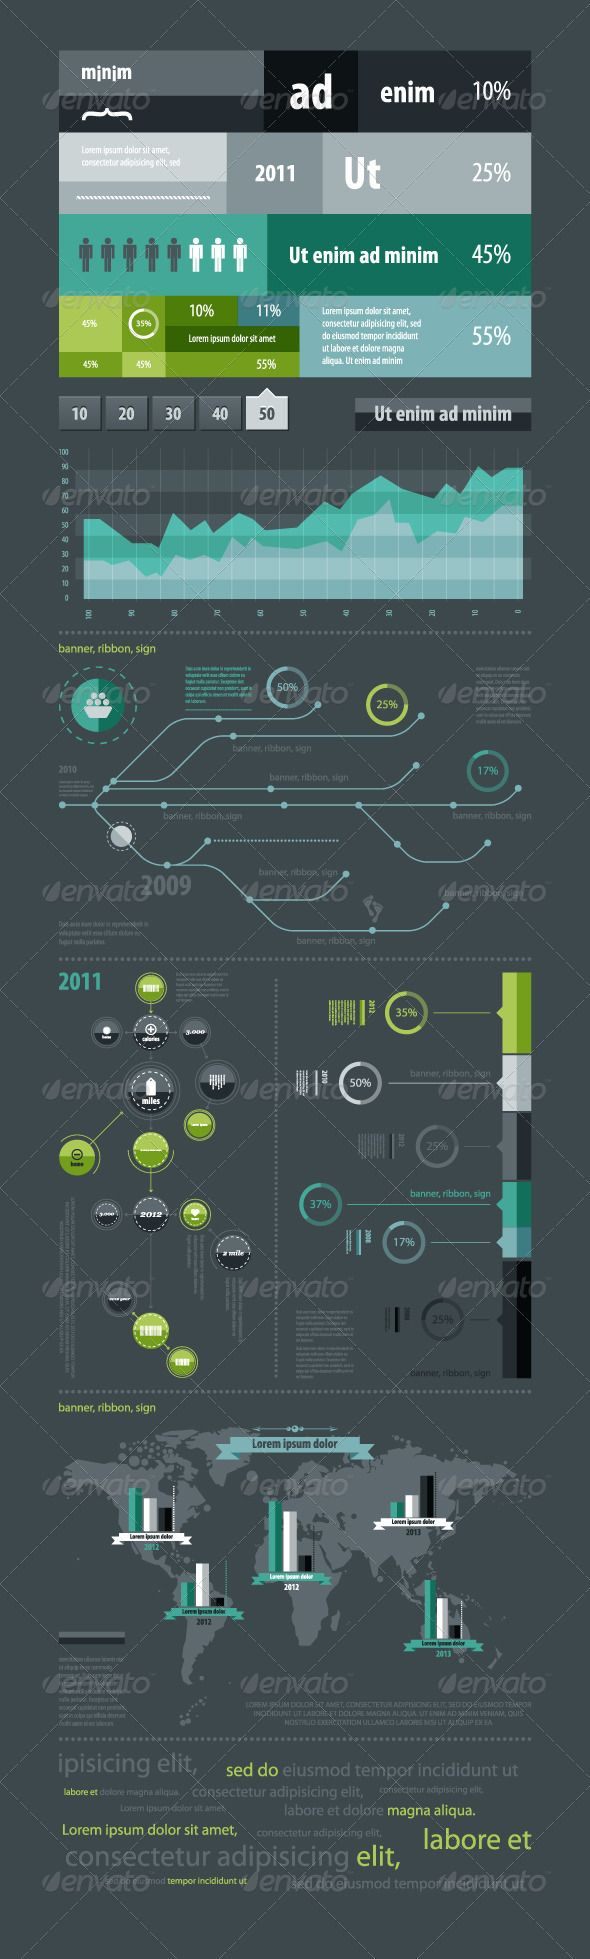 Elements of infographics with a map of the World - http://startupstacks.com/infographics/elements-infographics-map-world.html - free download